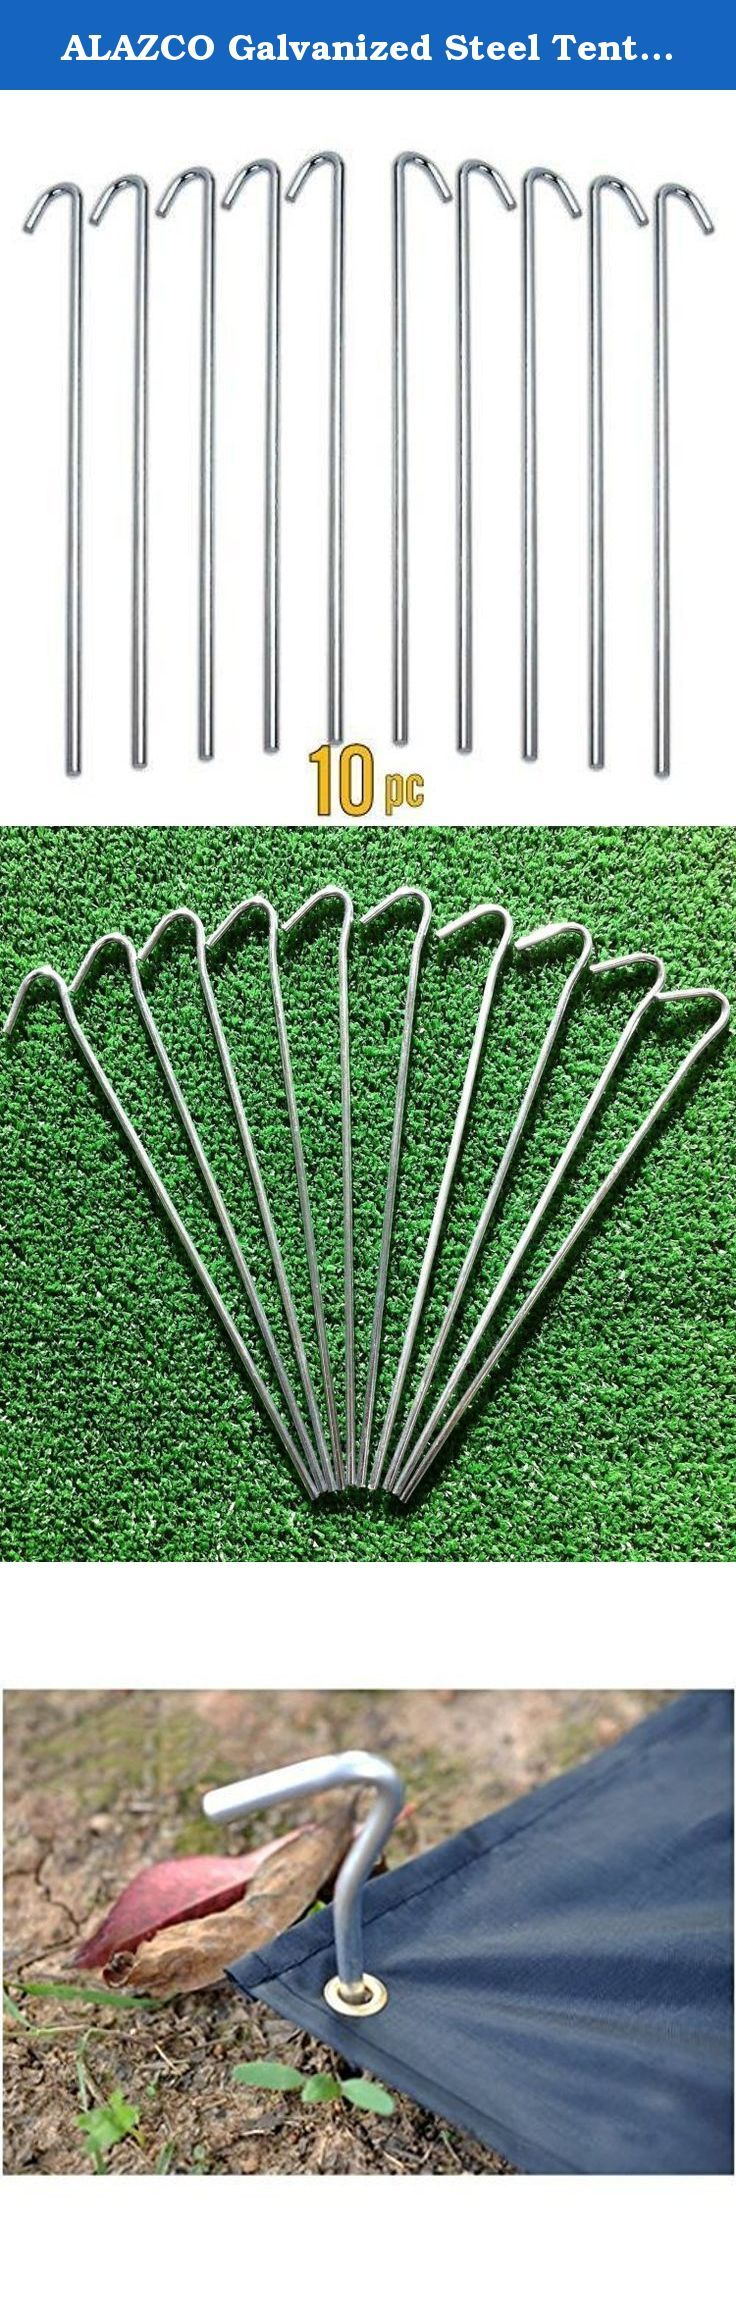 """ALAZCO Galvanized Steel Tent Pegs - Garden Stakes -Heavy Duty - Rust Free (10 pc). Perfect for anchoring tents, garden nettings & tarps to cover and protect flowers, vegetables & Landscaping or tightly secure outdoor holiday decorations!. 4mm diameter heavy duty steel rod with galvanized finish for superior rust-resistance. 9"""" length with large non-slip 1"""" hook for attaching rope or for anchoring. Each weighs just 1 ounce yet Heavy duty & unbreakable. Sold in Sets of 10 pegs - ONLY by…"""